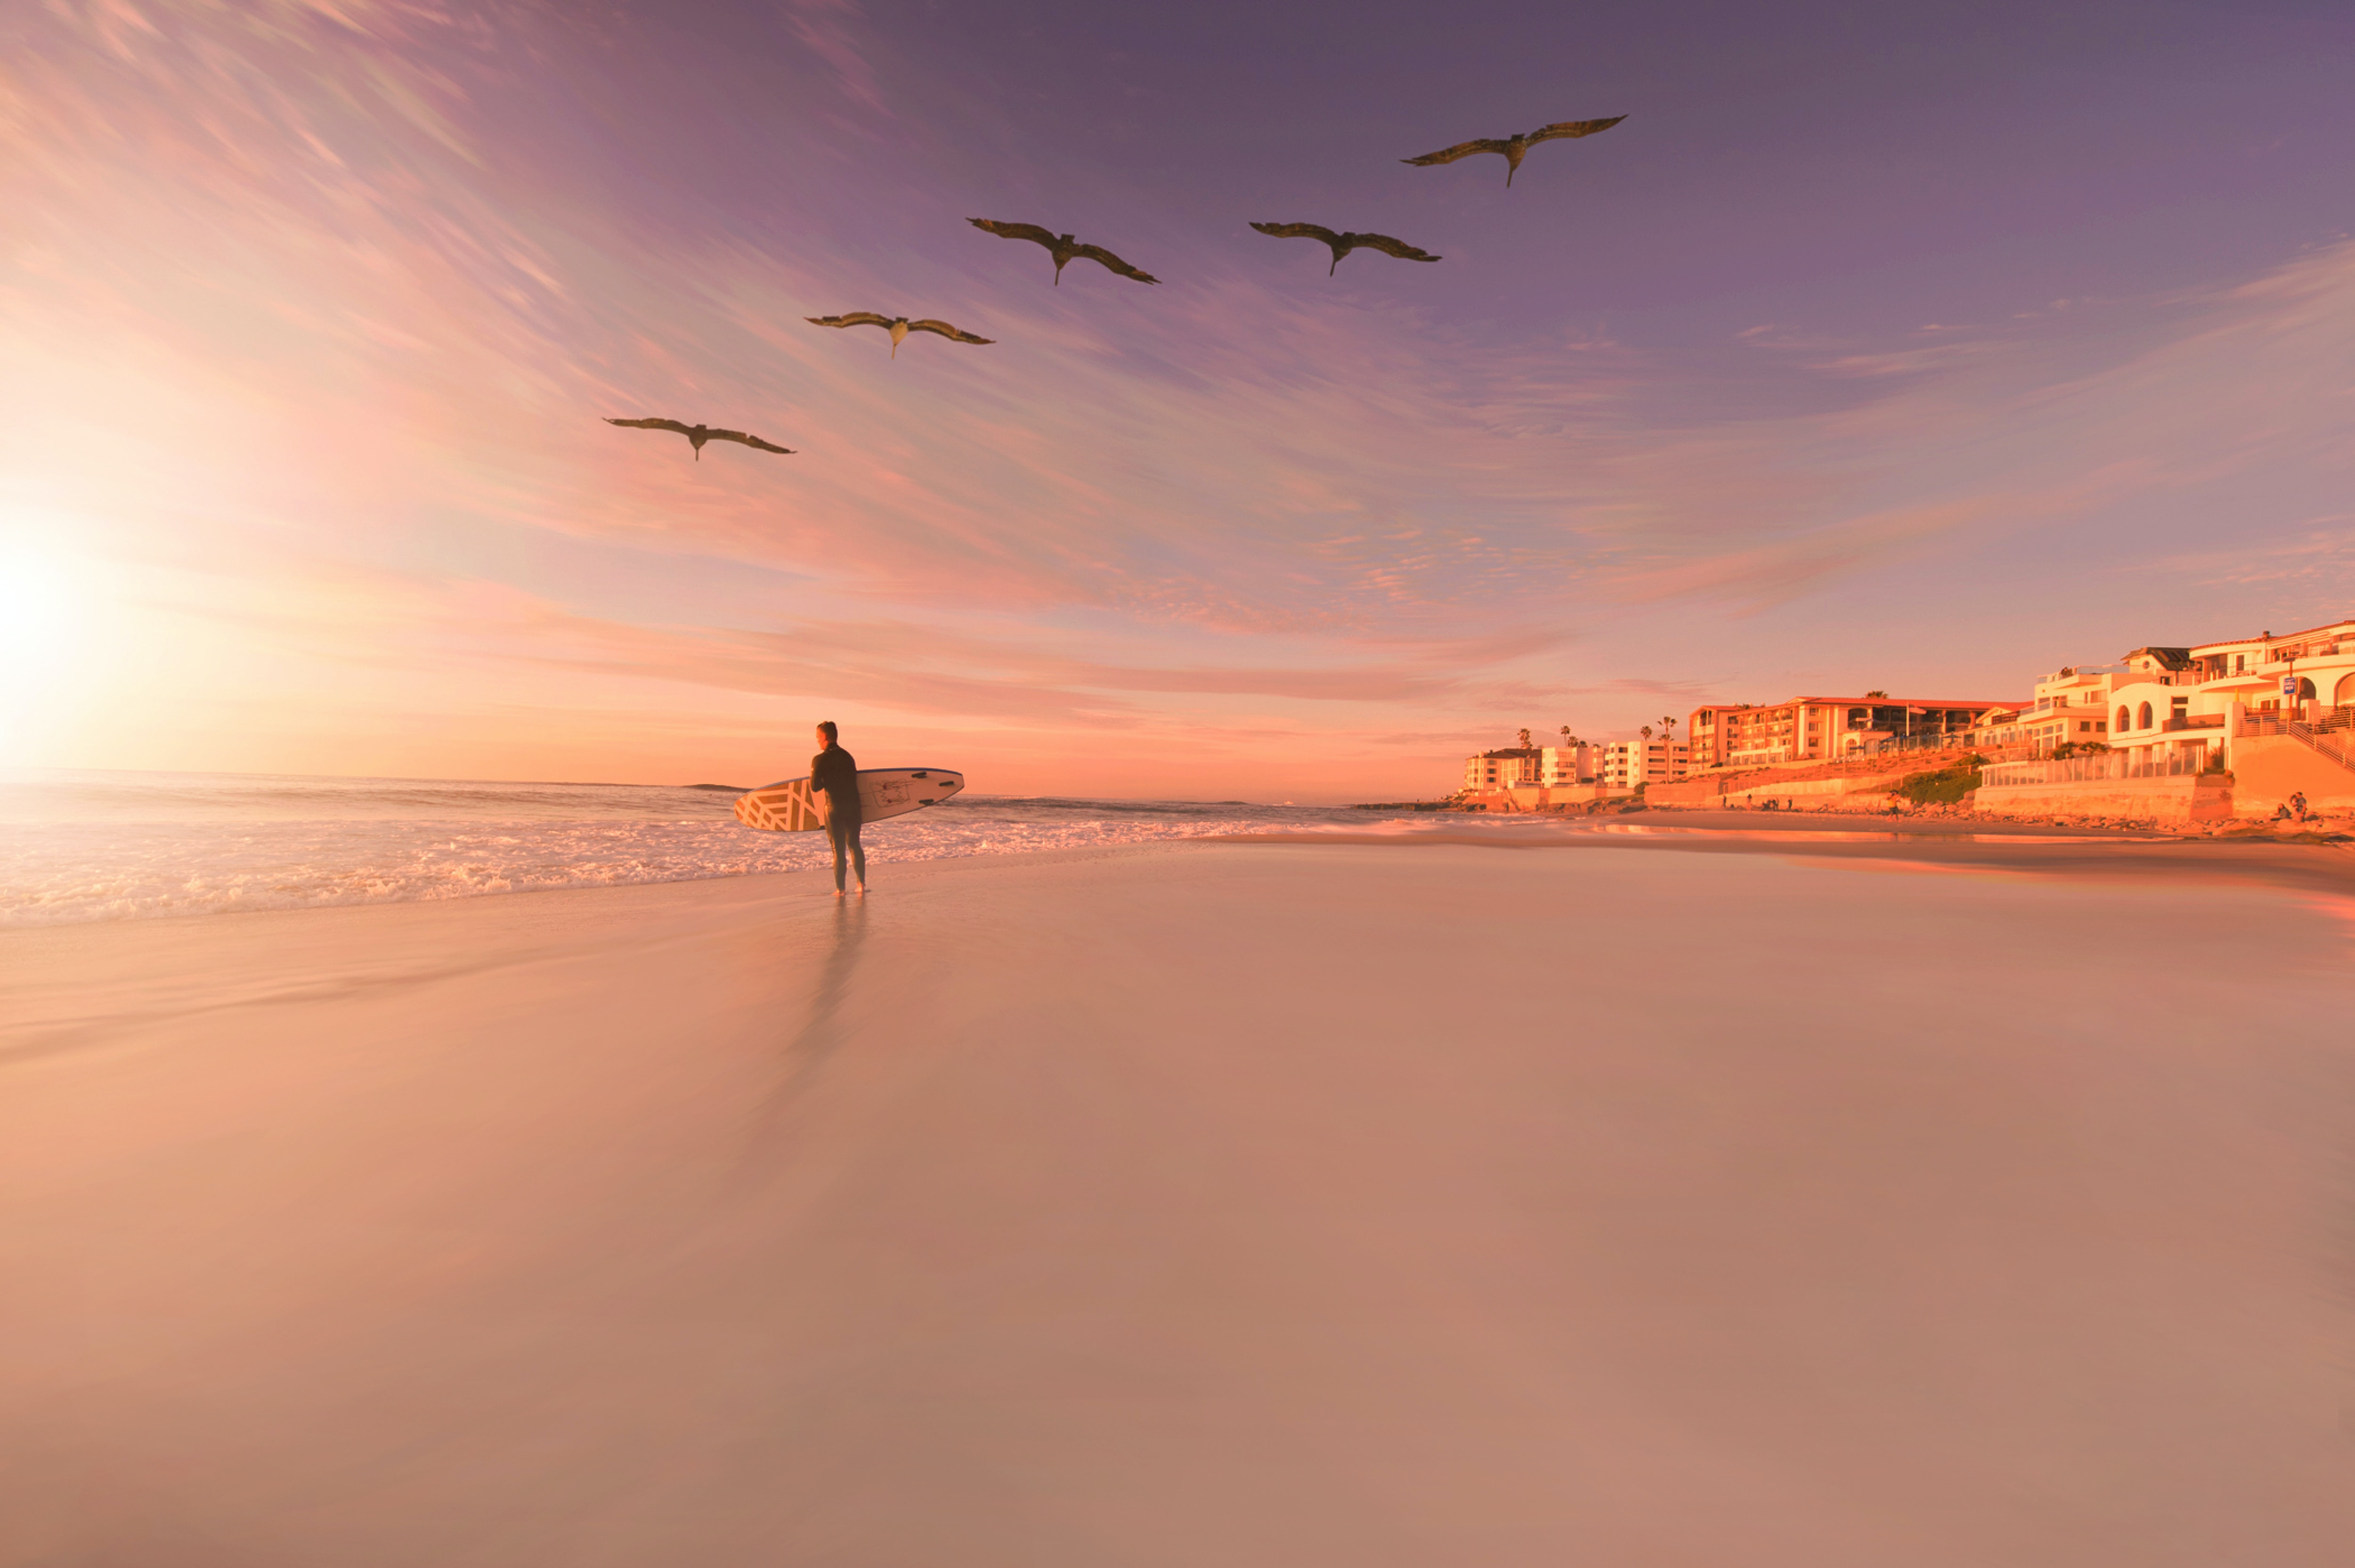 Surfer on a sandy beach beneath a flock of birds during sunset in San Diego